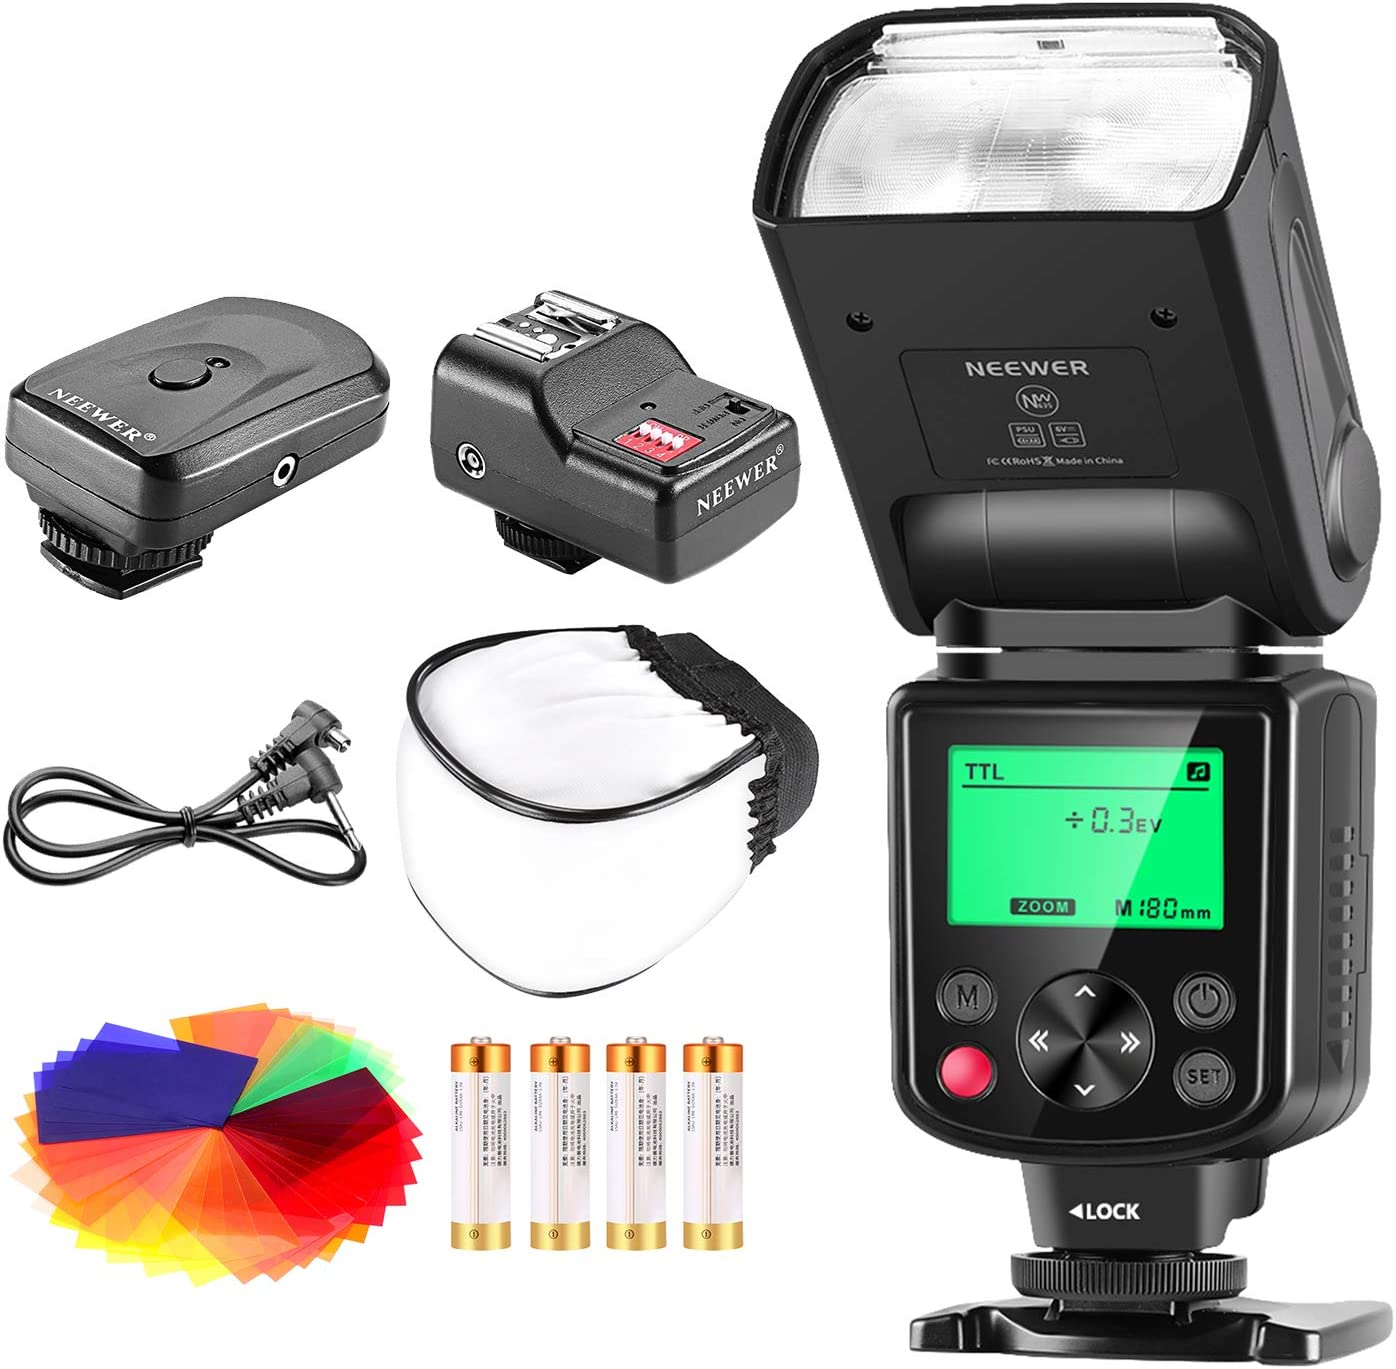 Neewer 750II TTL Flash Kit forNikon D7200 D7100 D7000 D5500 D5300 D5200 D5100 D5000 D3300 D3200 D3100 D3000 D700 D600 D500 D90 D80 D70 D60 D50 Cameras withWireless Trigger,Color Filters, Diffuser